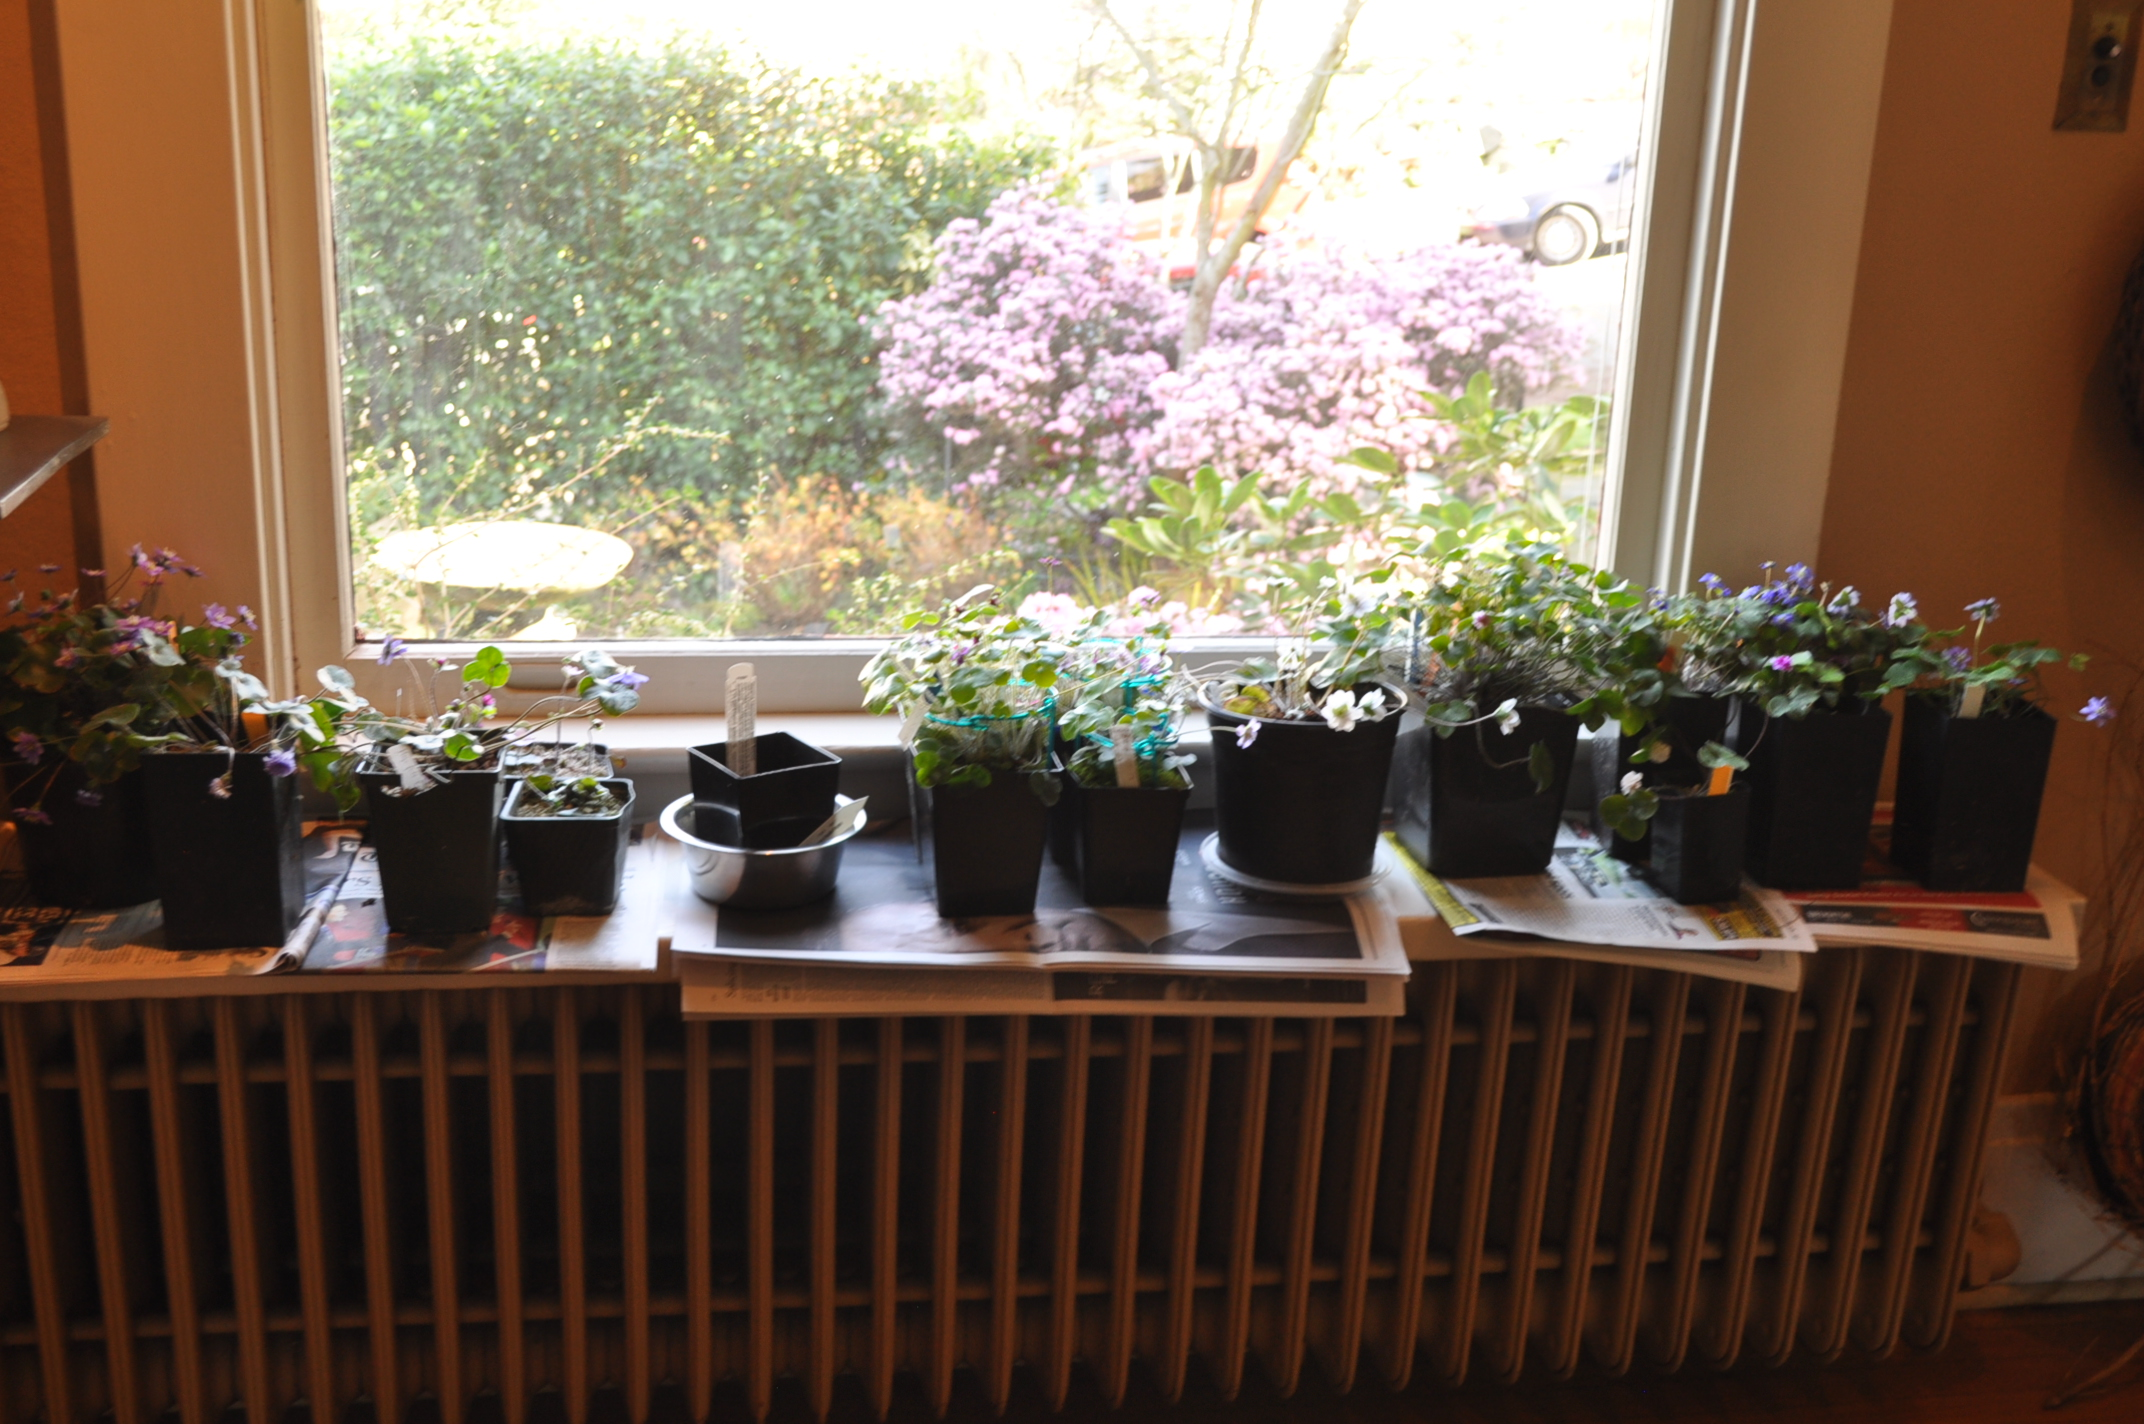 Hepatica show and tell